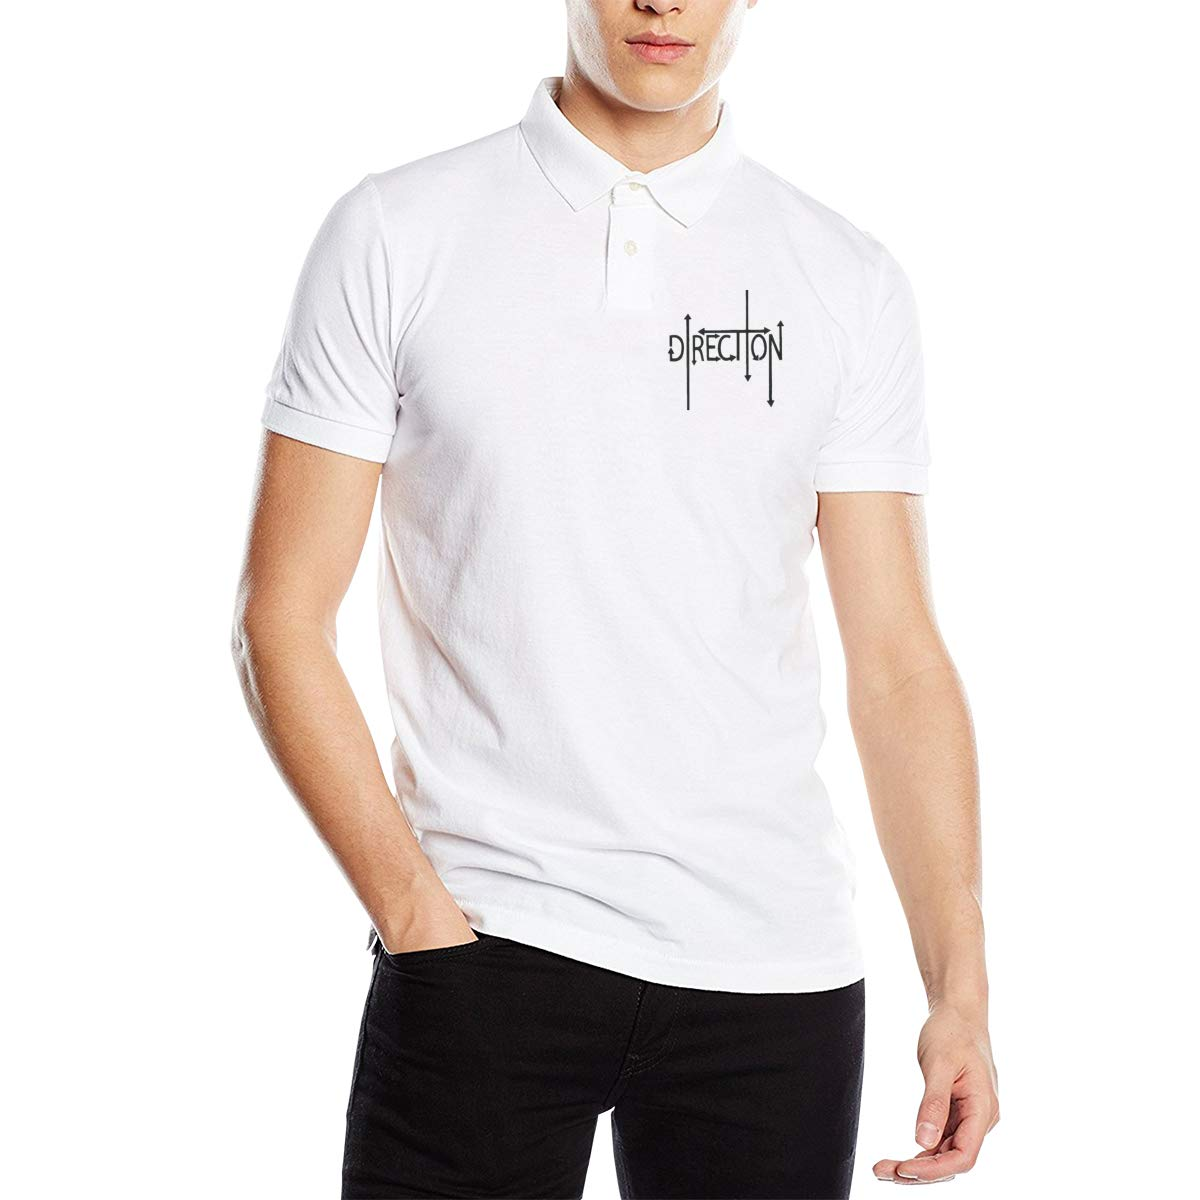 Direction Men Regular Fit Cotton Polo Shirts Classic Short Sleeve Polo White